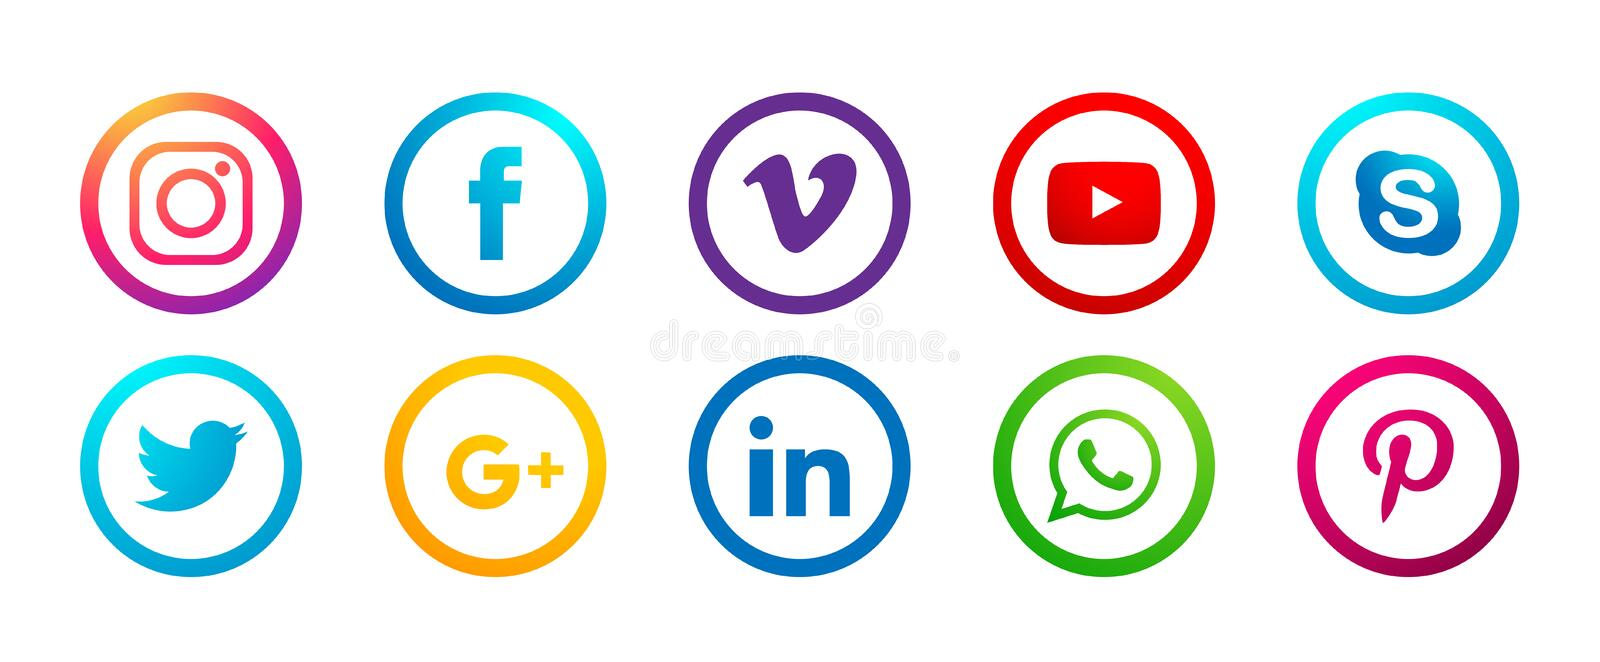 Set of popular social media logos icons Instagram Facebook Twitter Youtube WhatsApp vimeo pinterest linkedin  element vector stock illustration